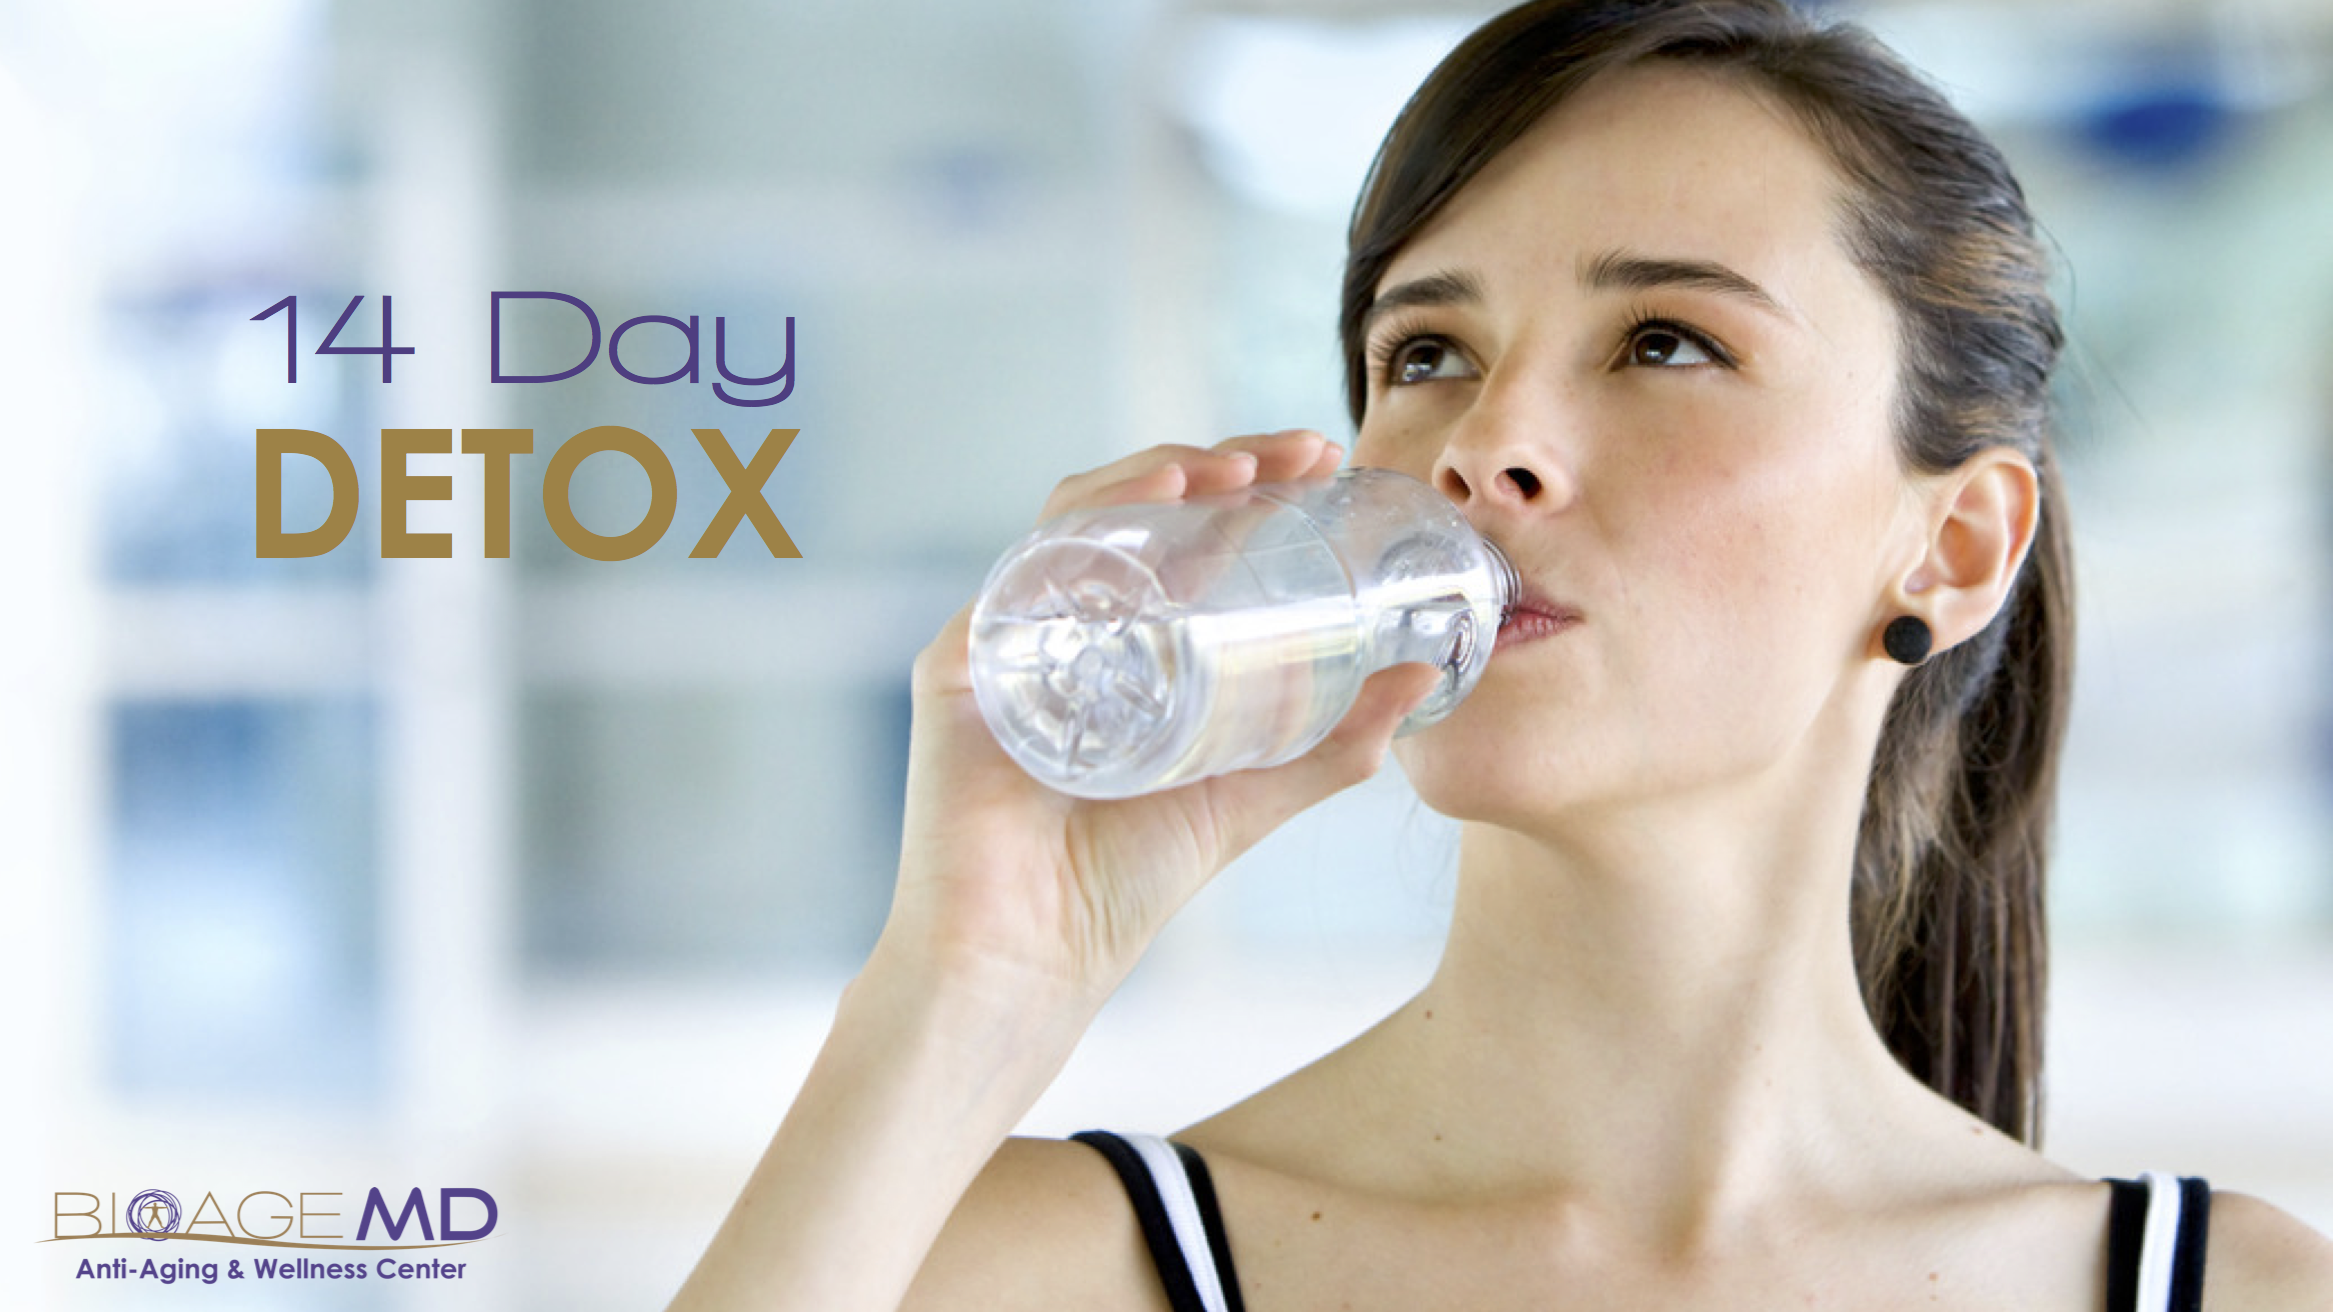 14 Day Detox from BioAge MD in West Palm Beach